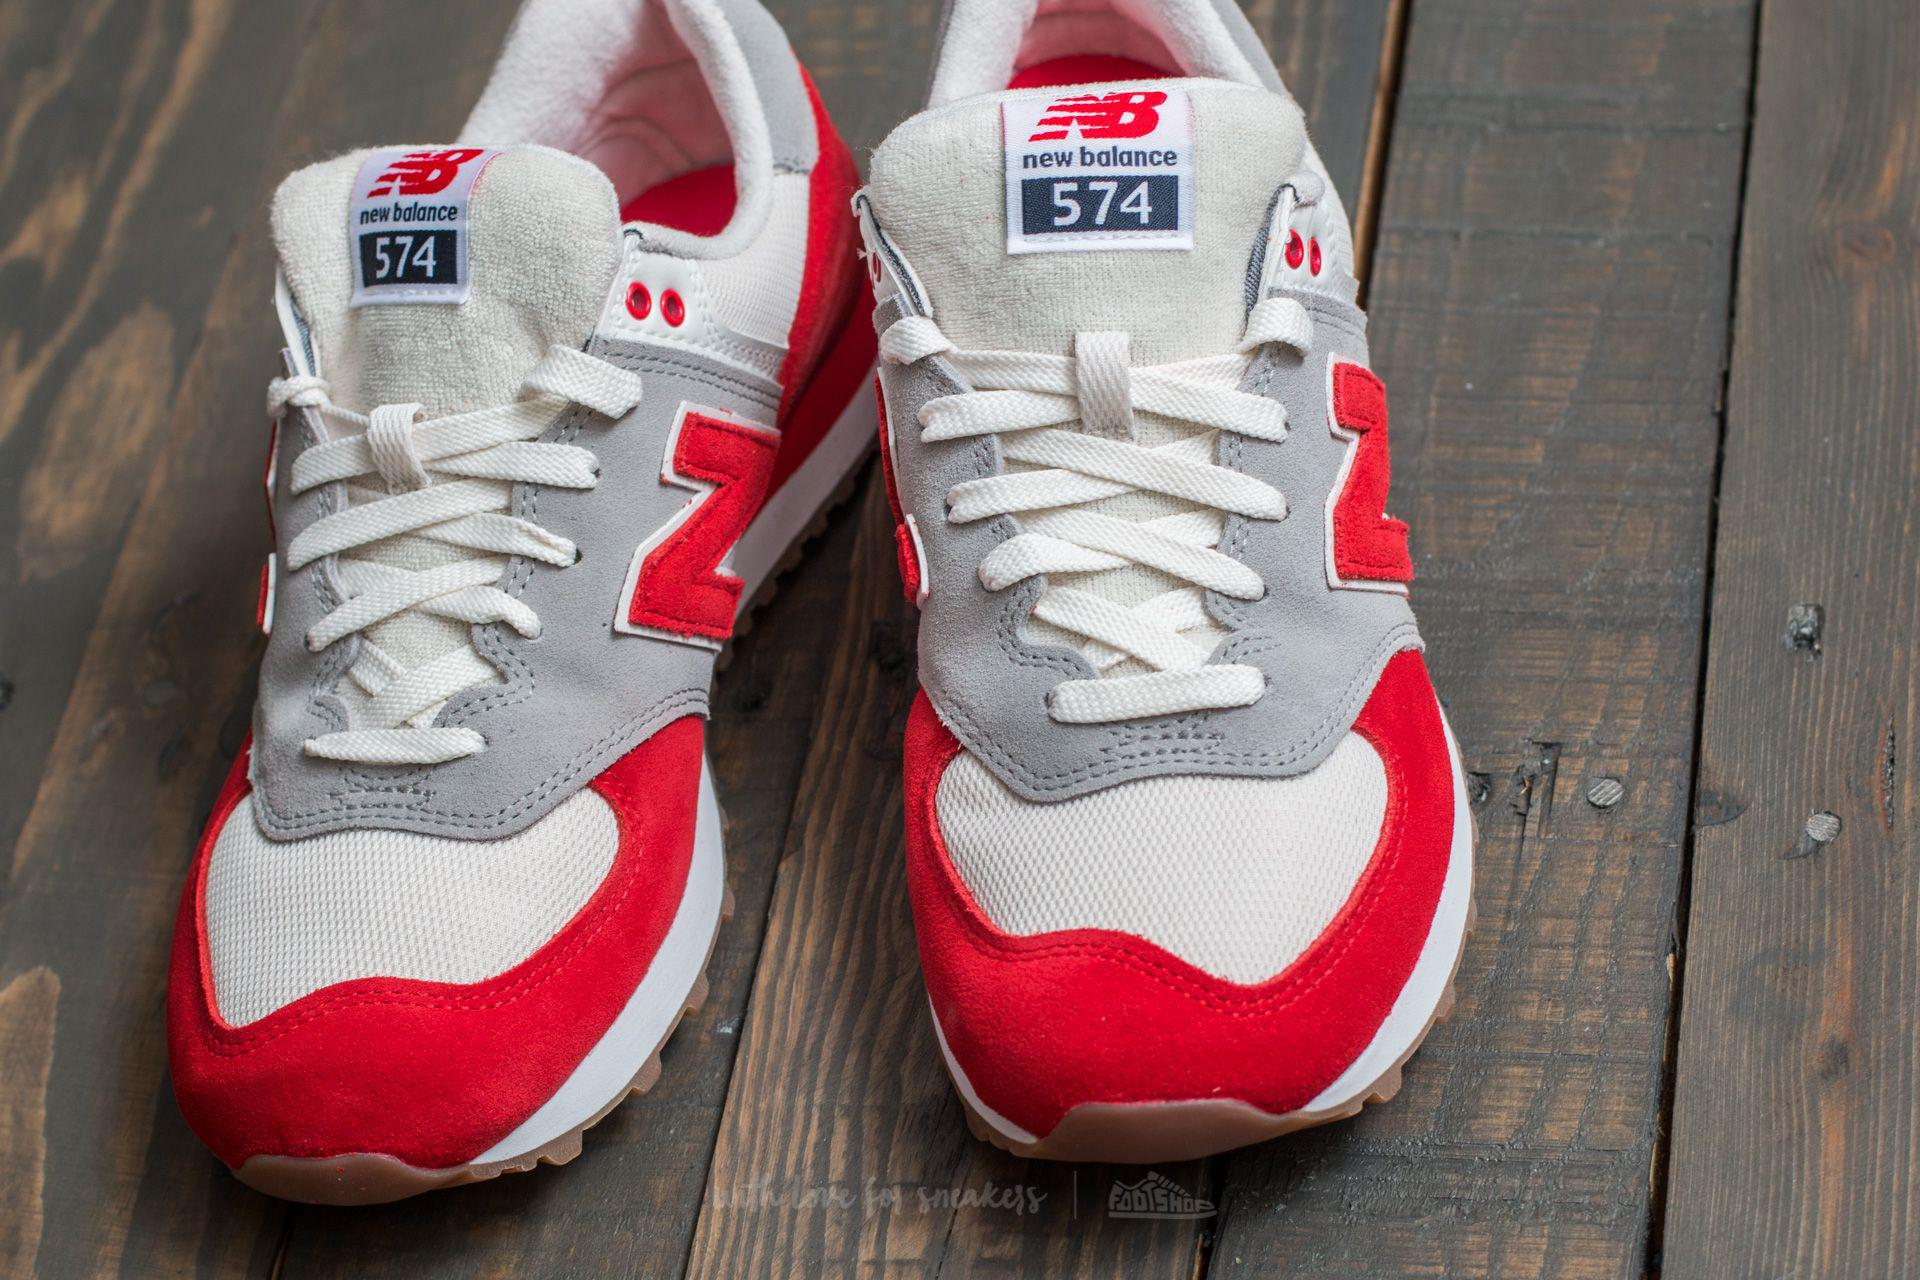 0a4b19680c10 ... Lyst - New Balance 574 Red Silver Mink for Men ...